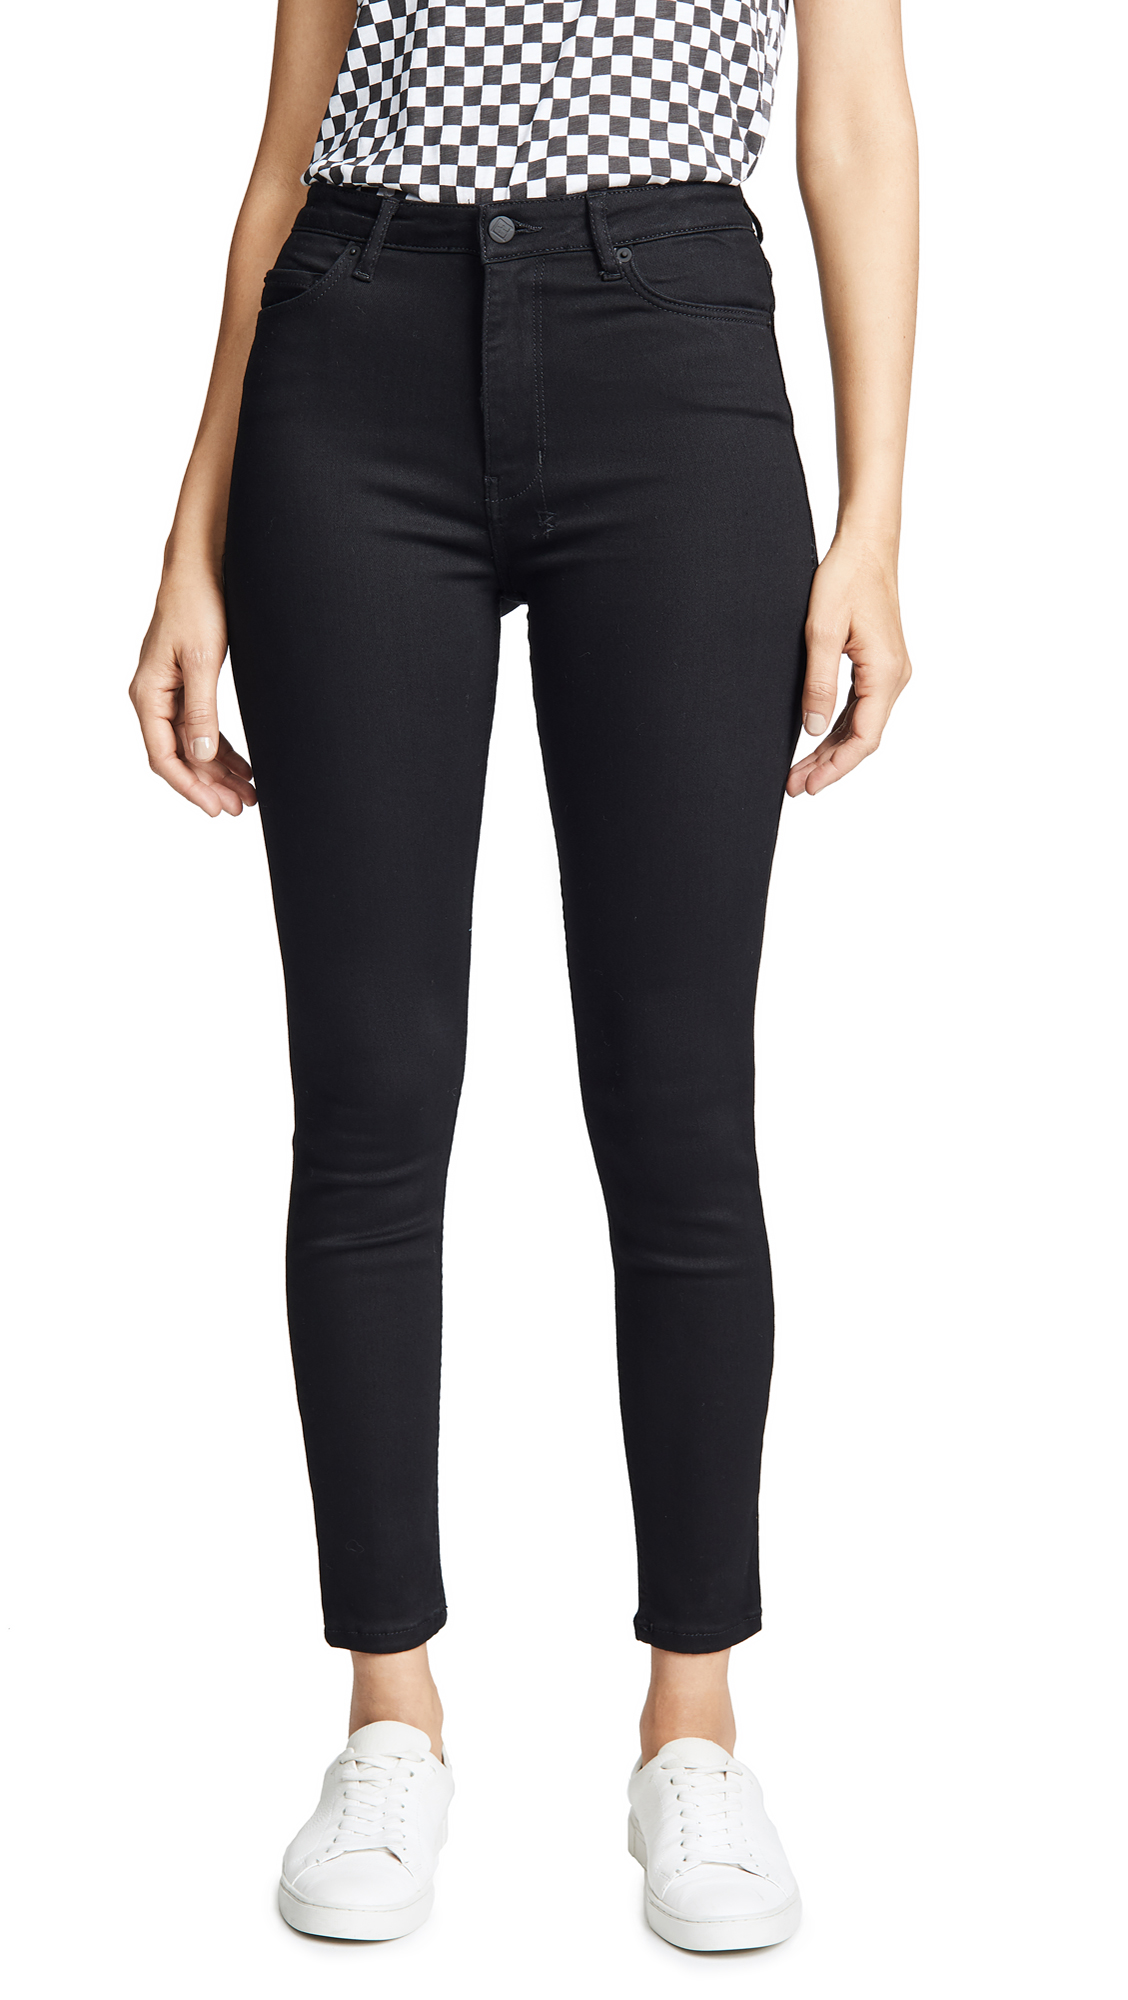 KSUBI Hi & Wasted Skinny Jeans in Black